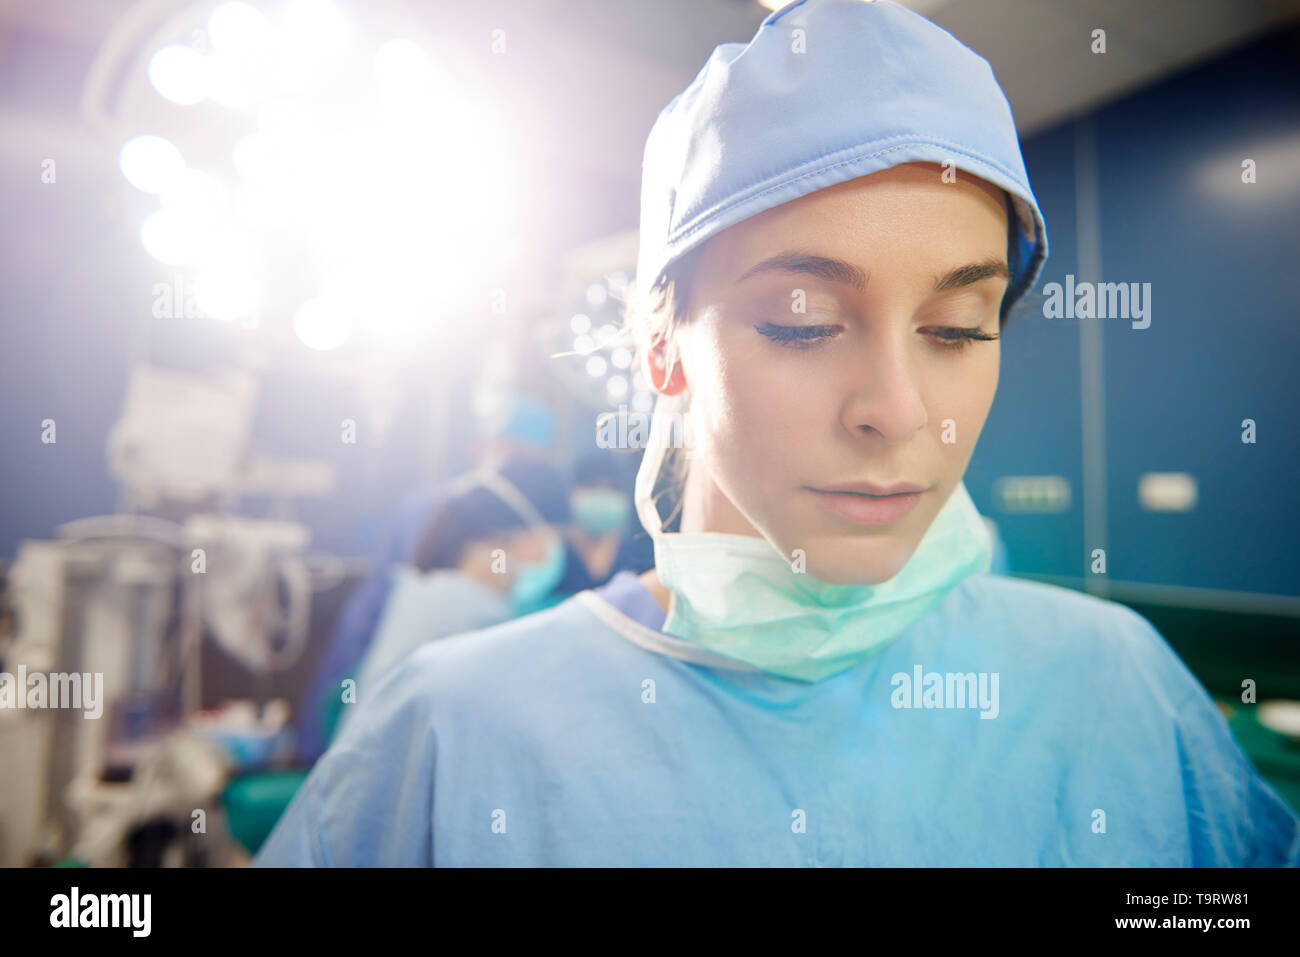 Worried and disappointment surgeon in operating room - Stock Image